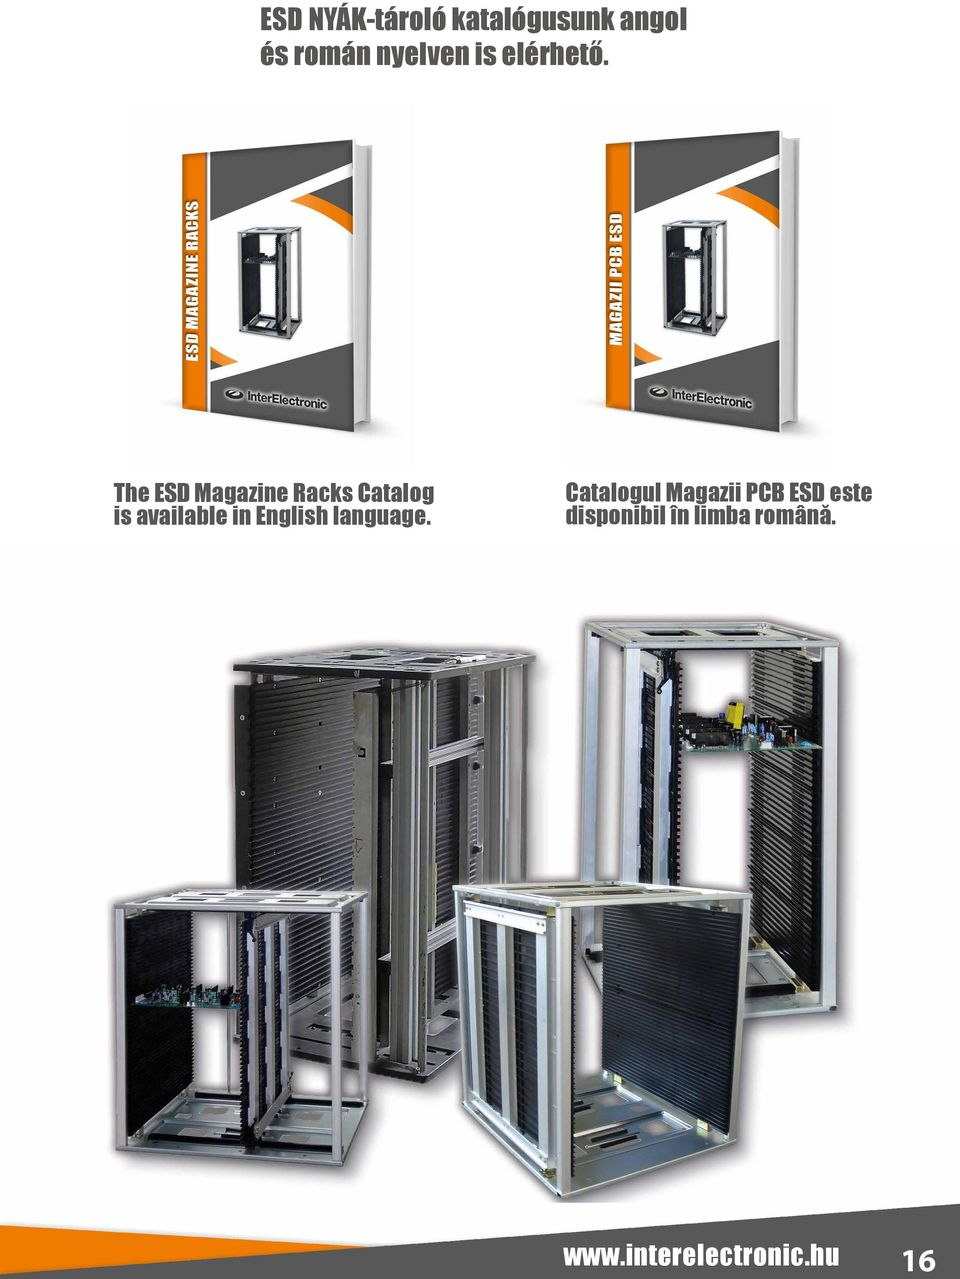 The ESD Magazine Racks Catalog is available in